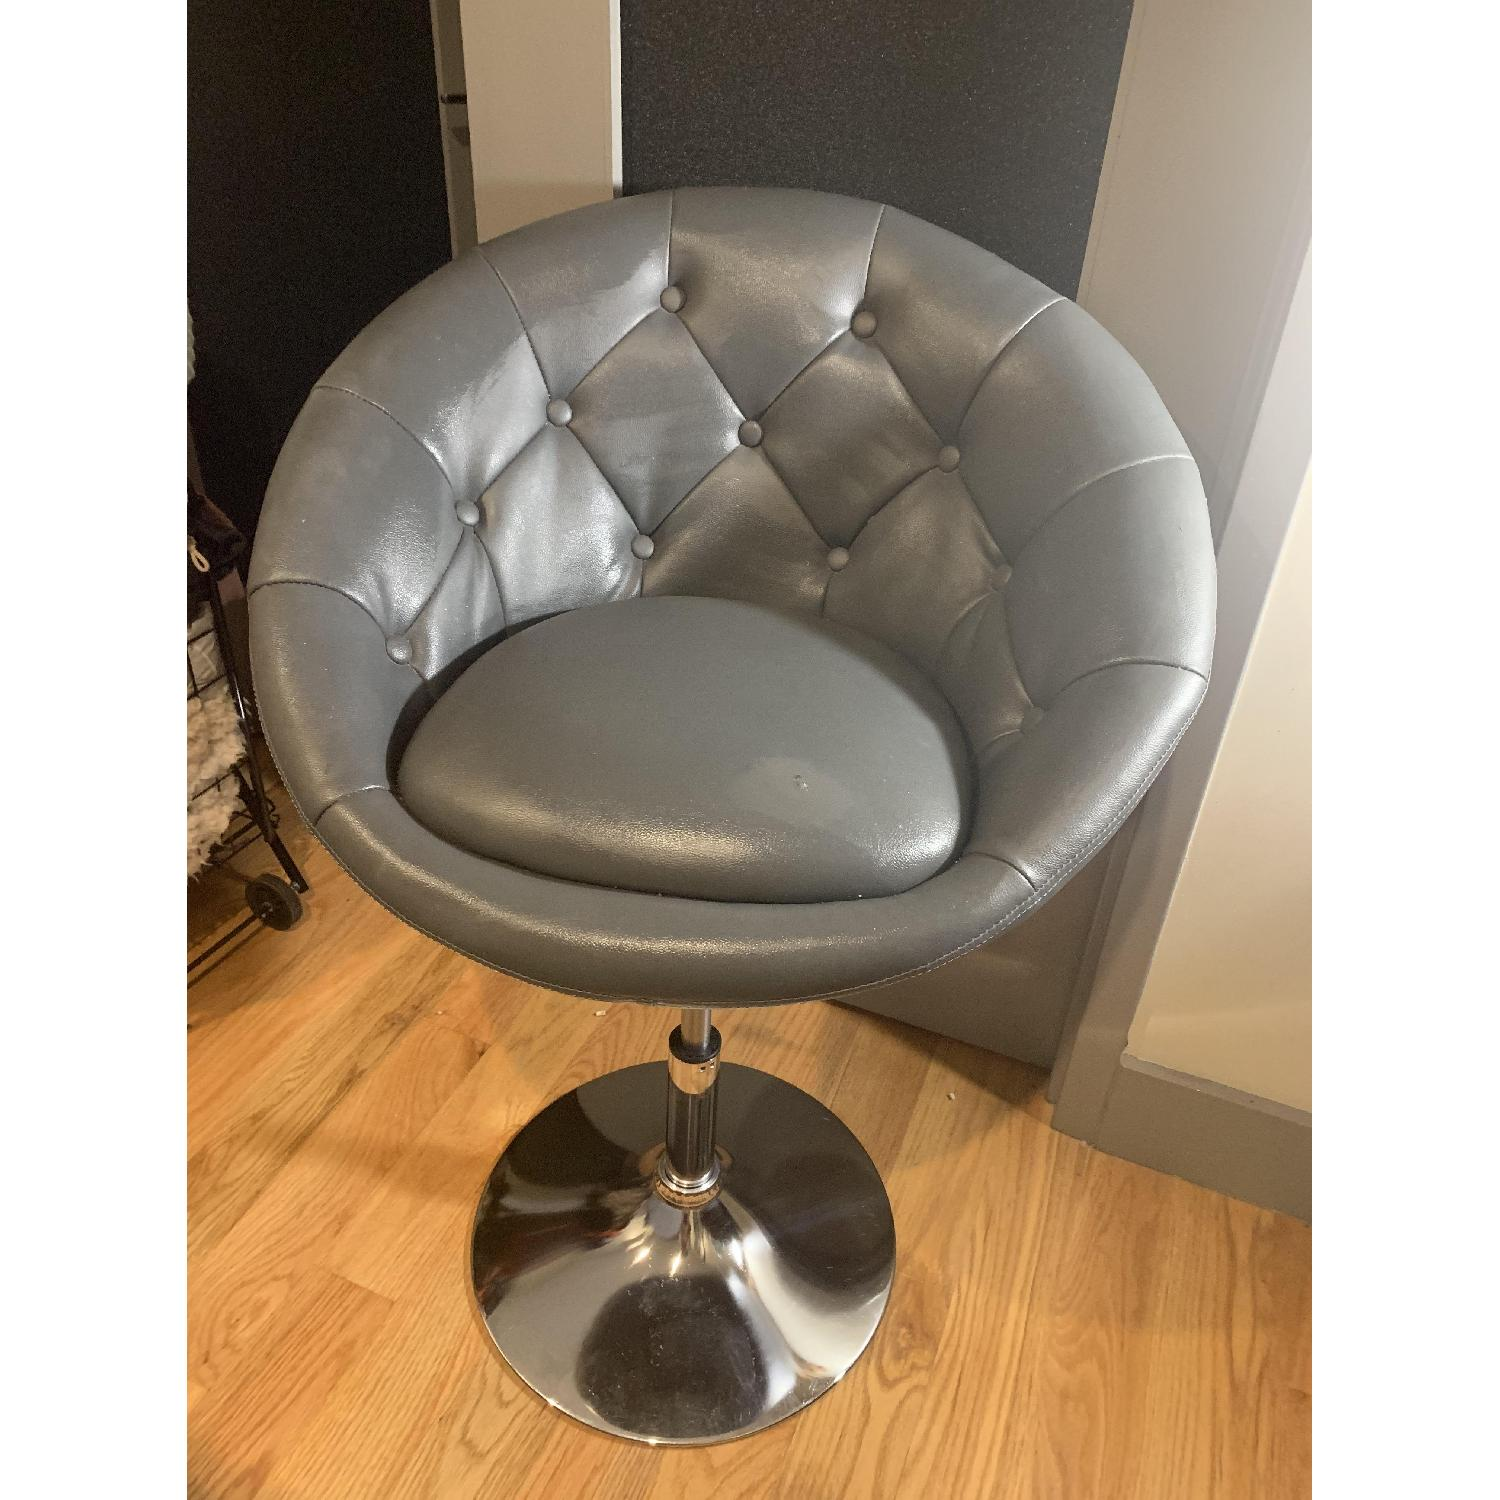 Round Hill Furniture Round Tufted Accent Chair - image-1